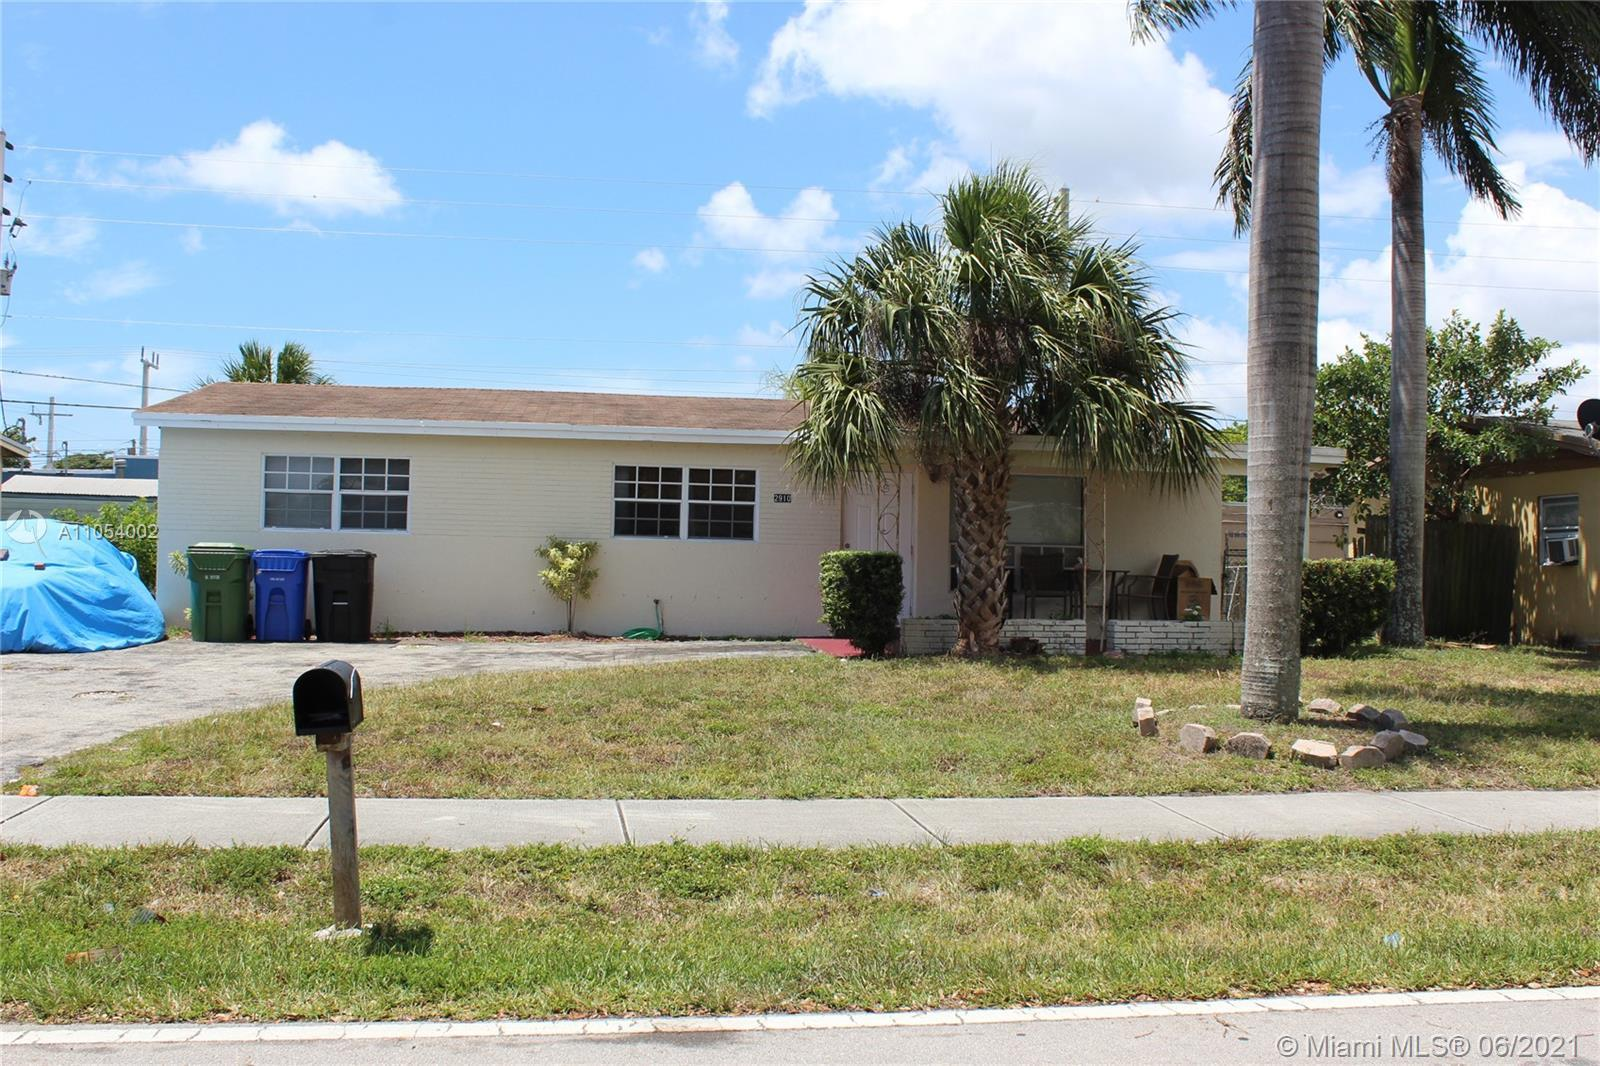 Great opportunity for owner occupant or investor, recently renovated and in the process of exterior